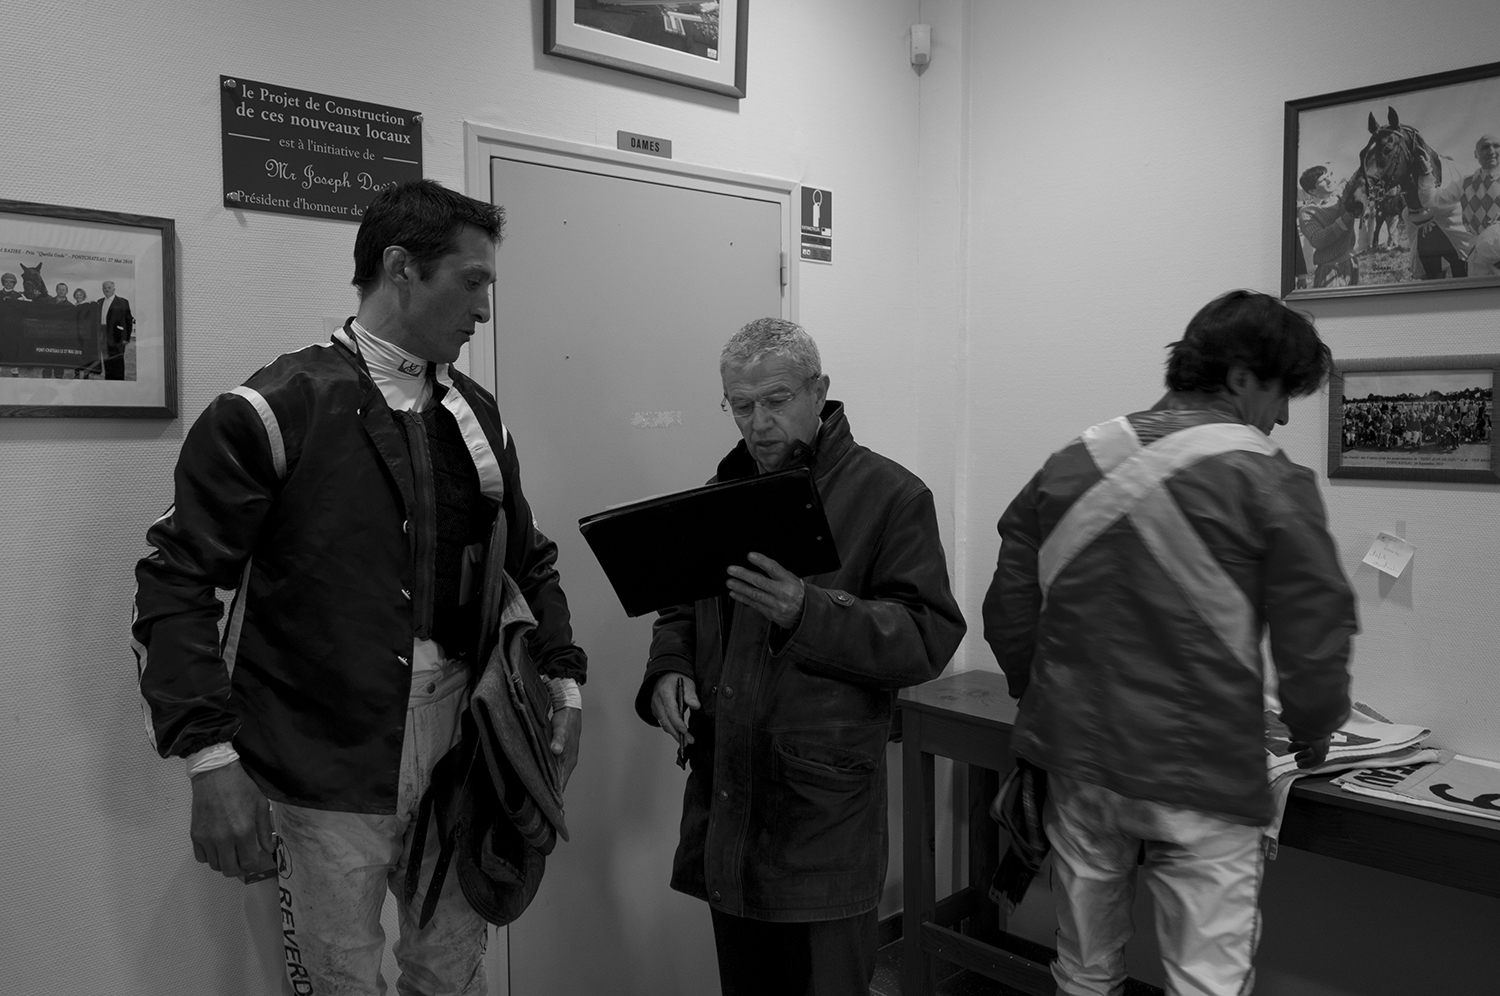 Jockeys at the weight-in supervised by a race steward.